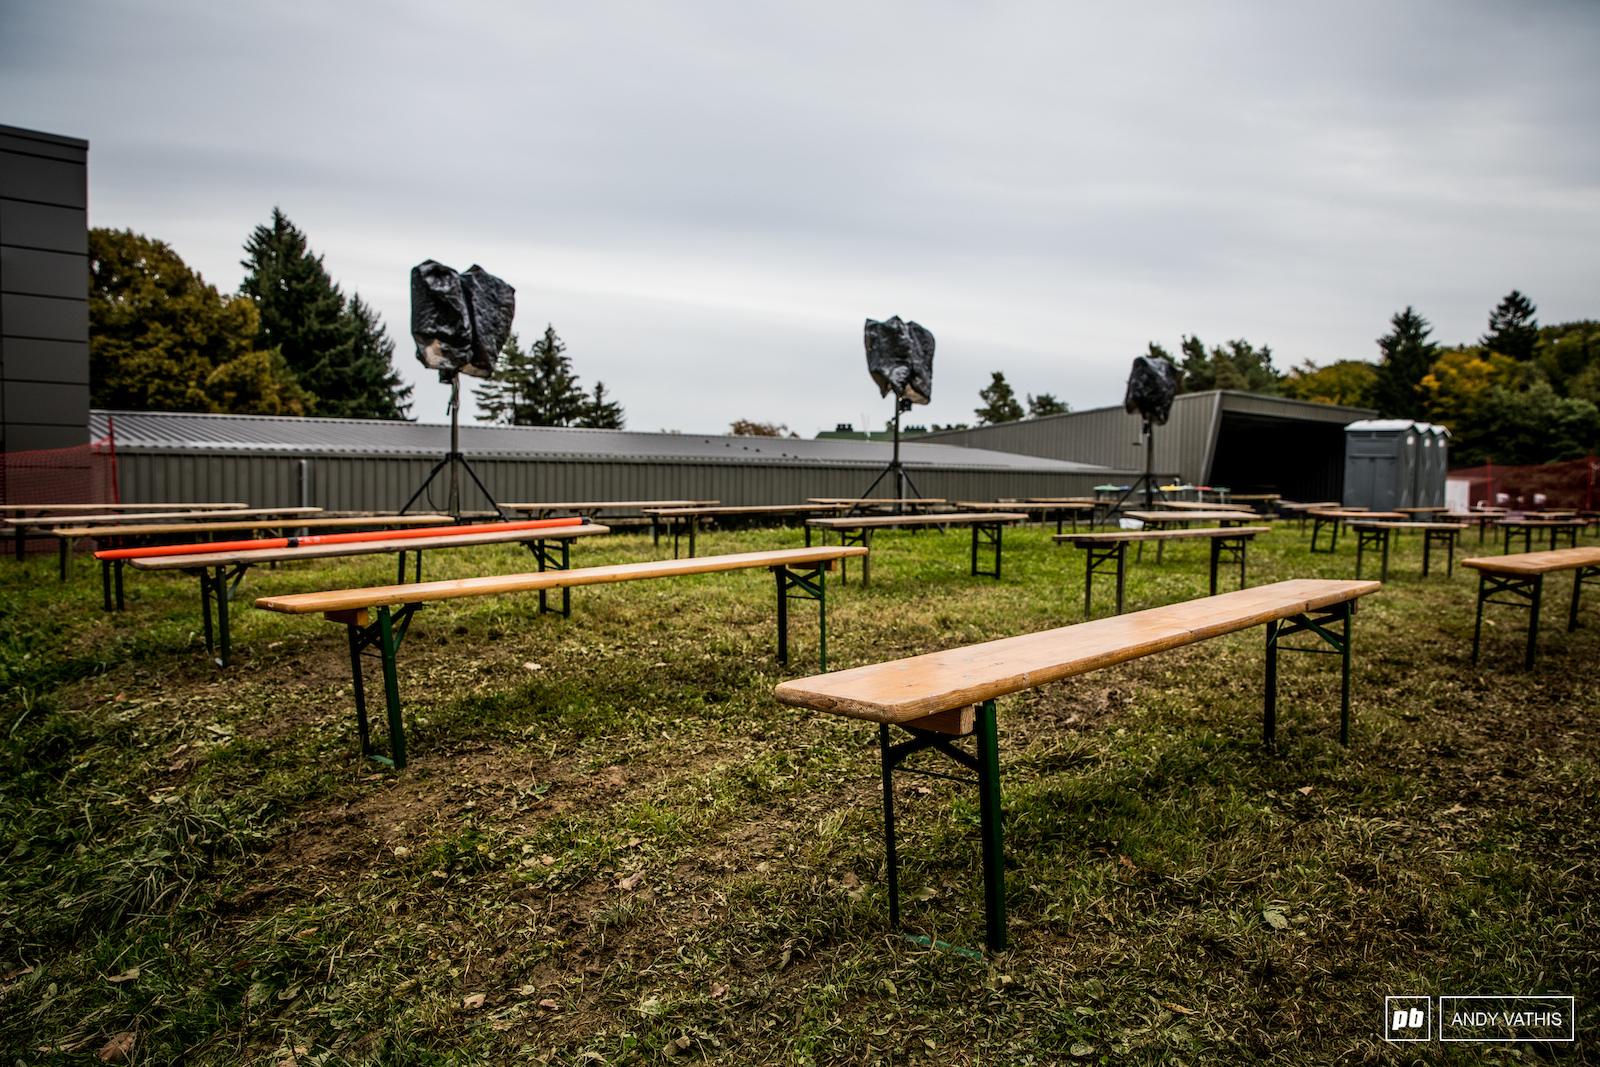 Benches in place of the grand stands at the finish. Definitely different times at the races for the foreseeable future.